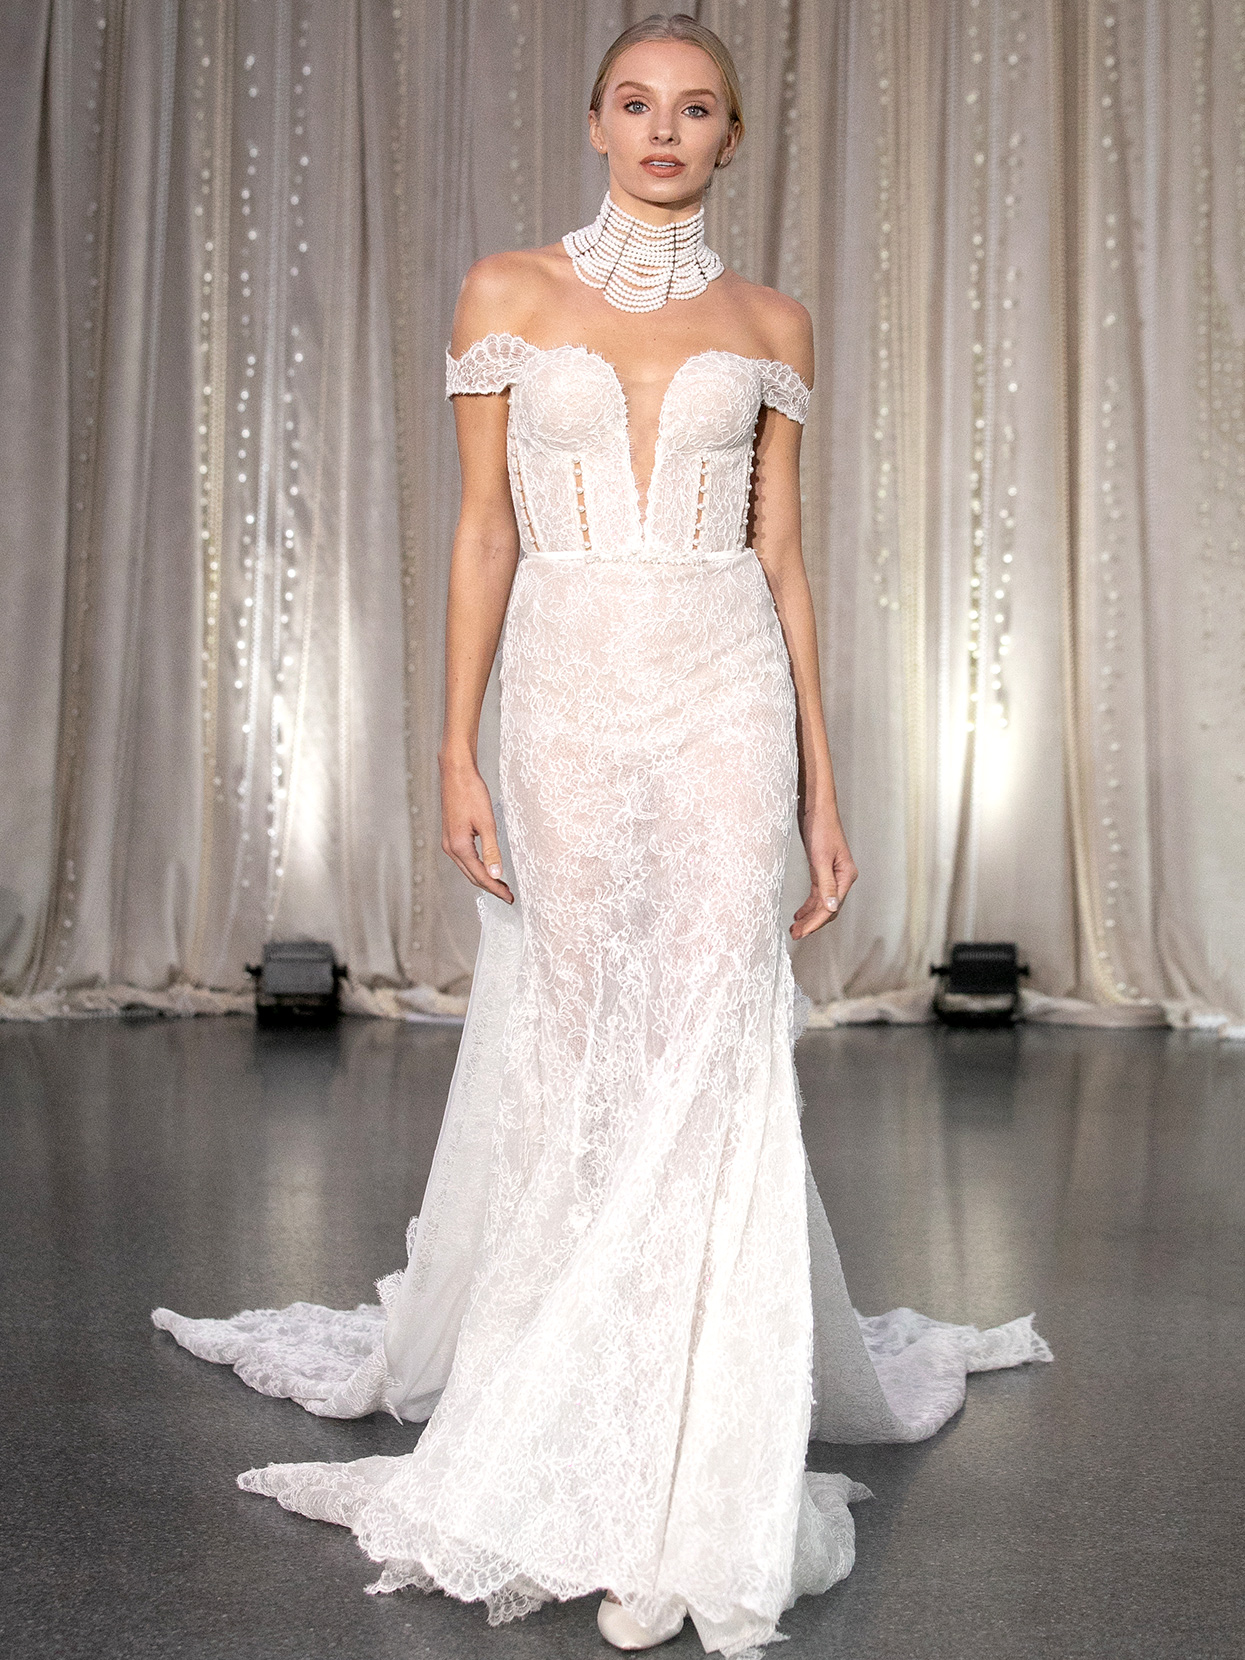 Lee Petra Grebenau off-the-shoulder lace plunging neck wedding dress fall 2020